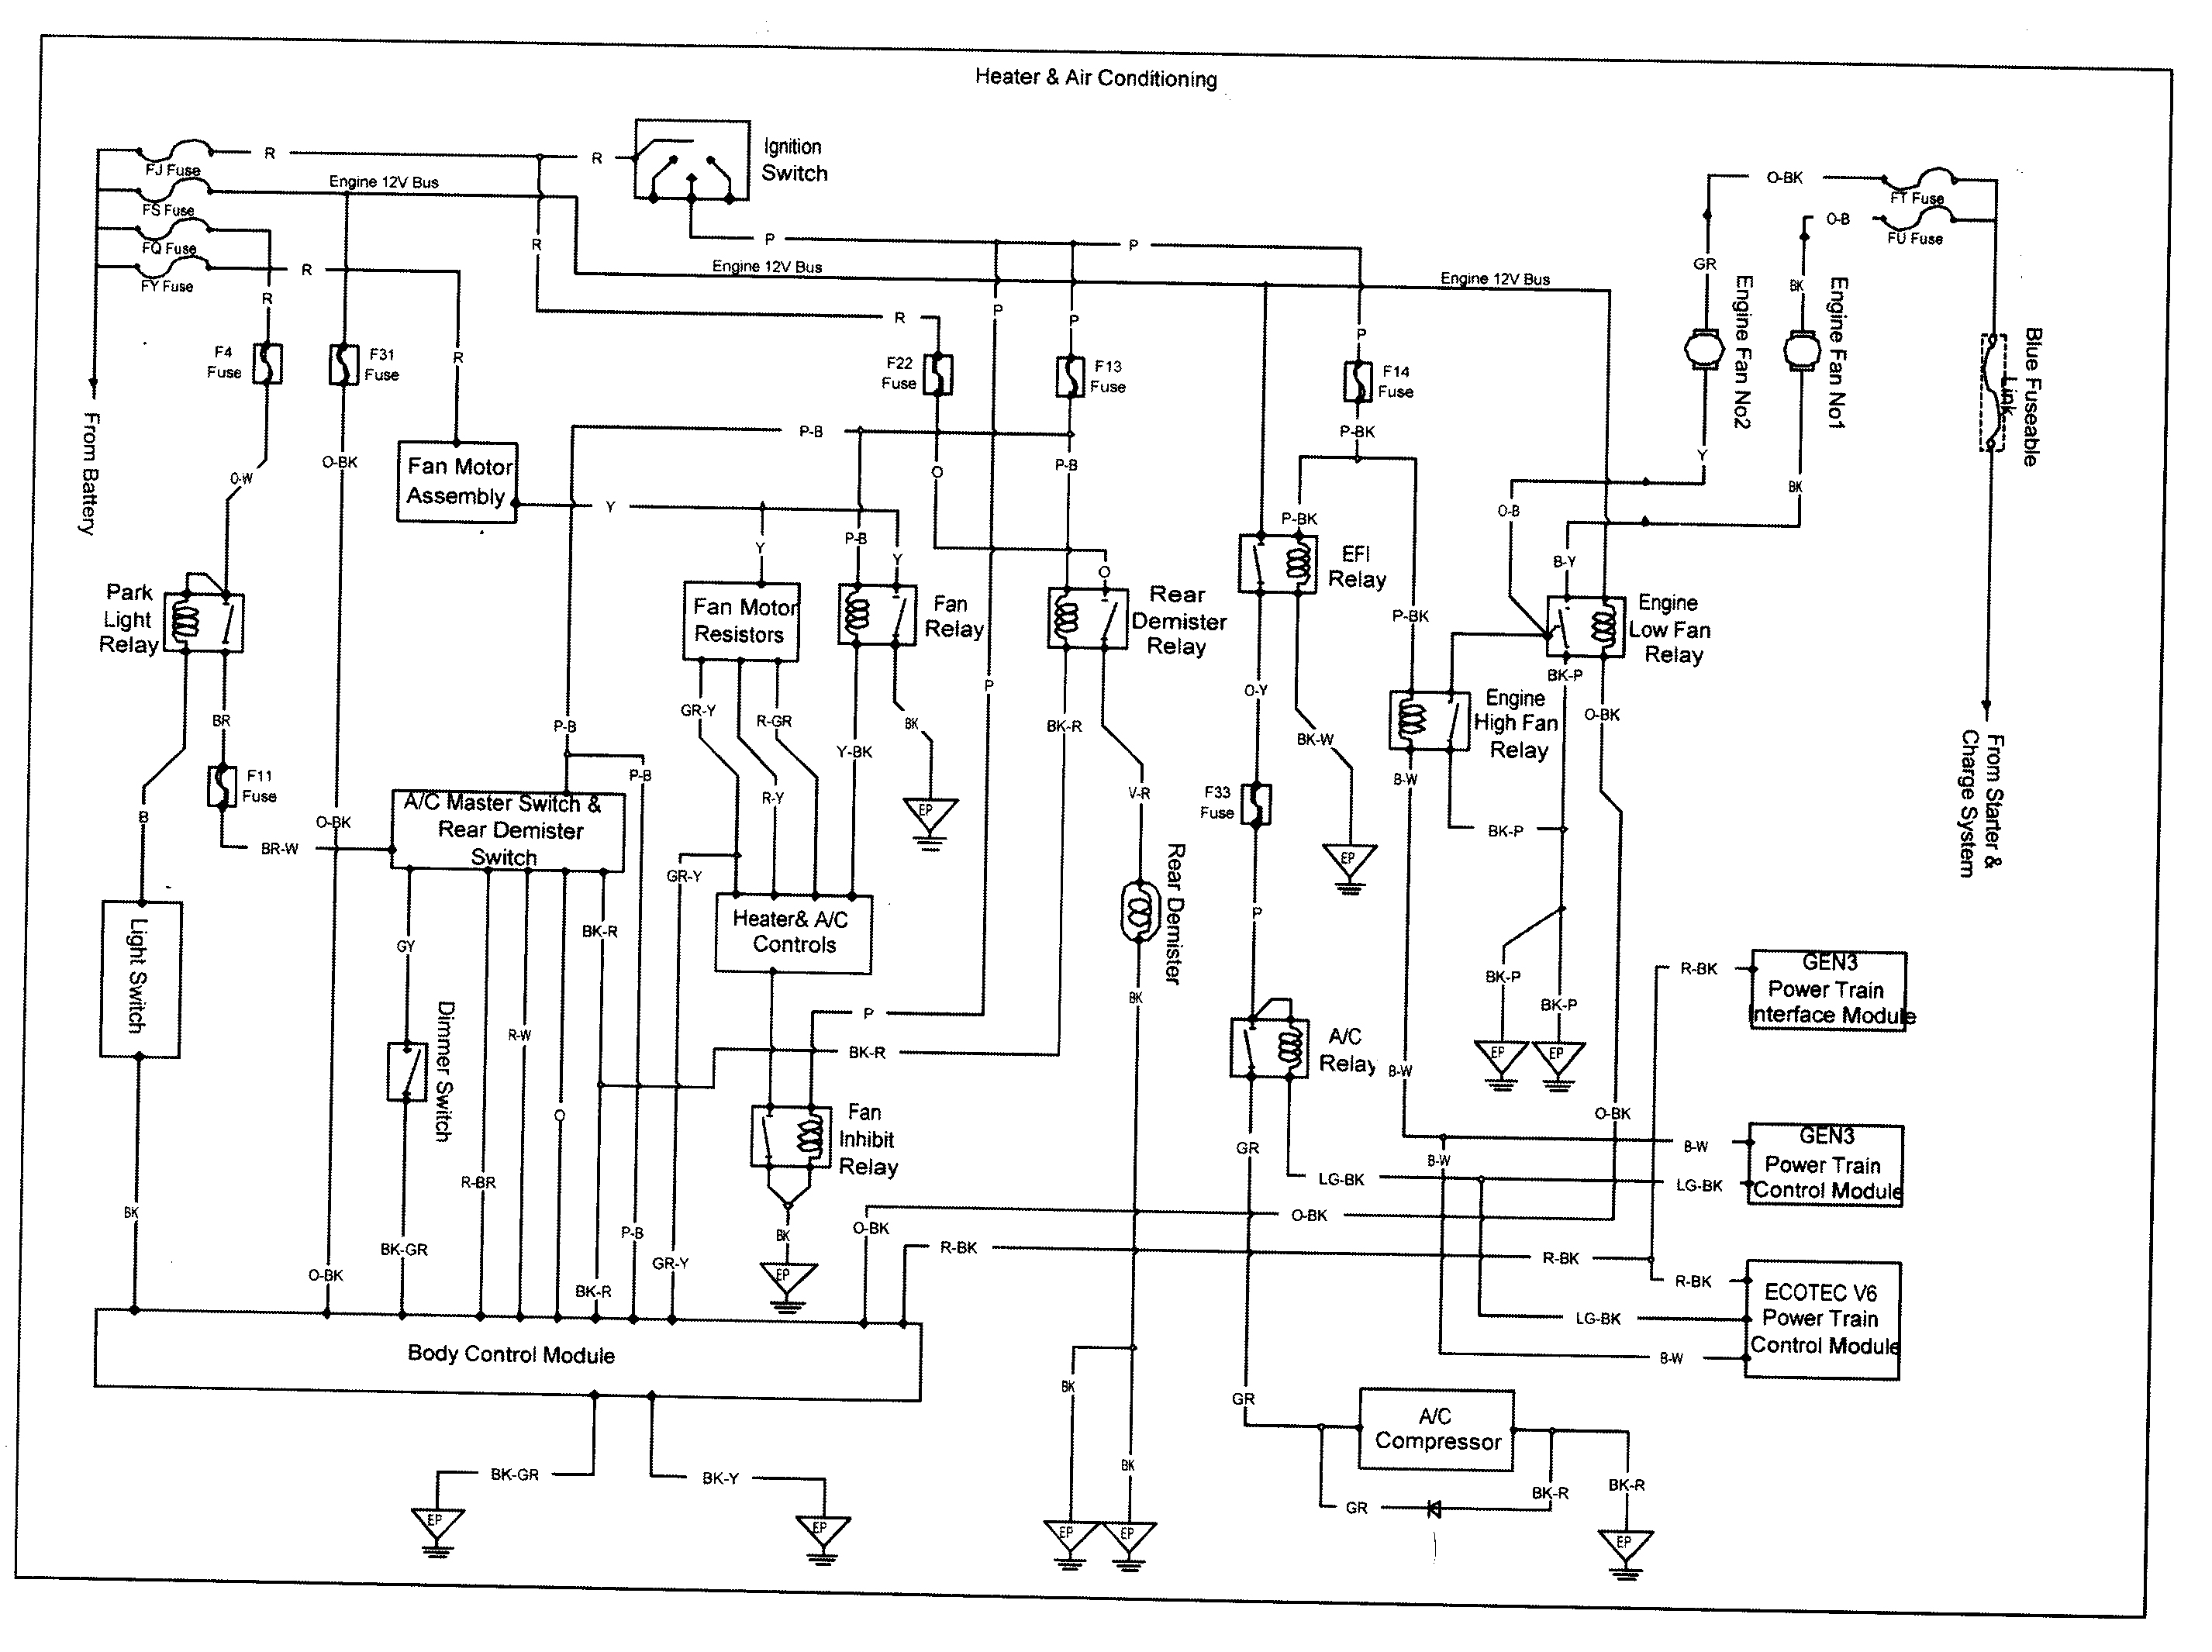 commodore vl wiring diagram advance mark 10 dimming ballast vs air conditioning auto electrical